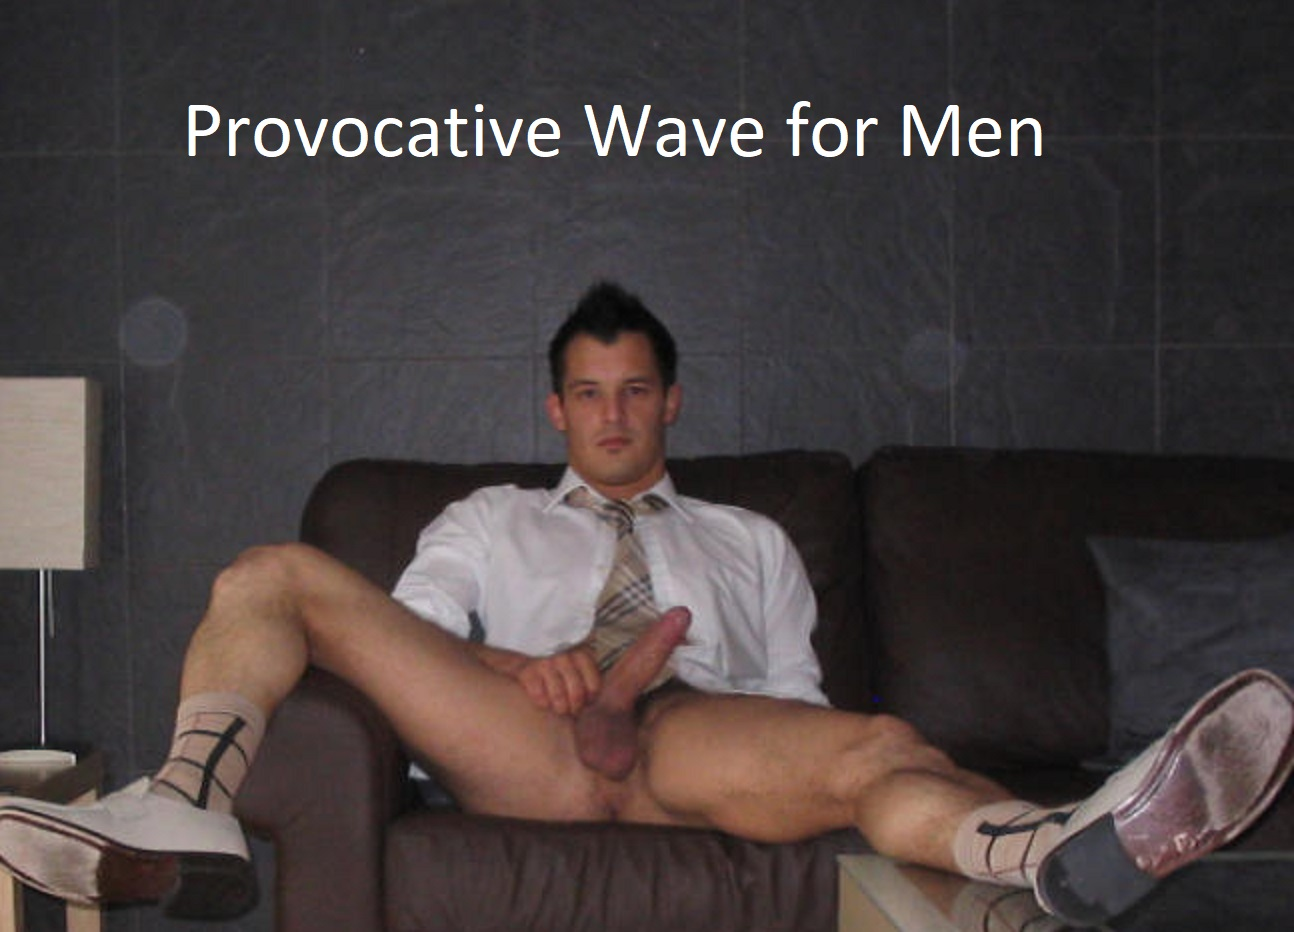 Provocative Wave for Men